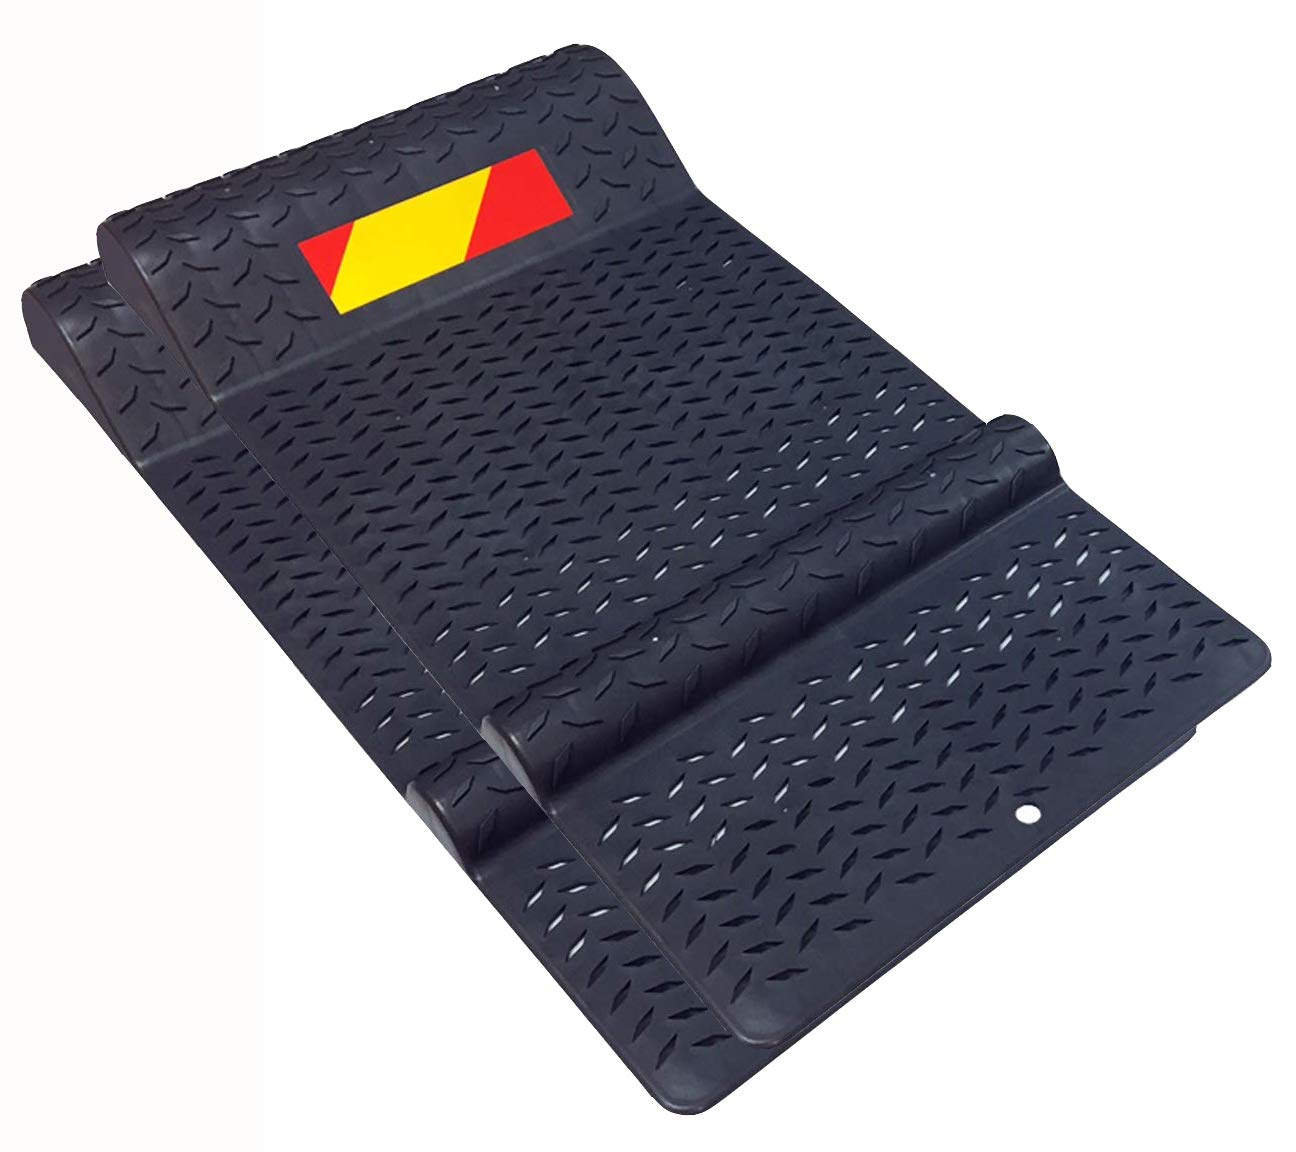 Electriduct Pair of Plastic Park Right Parking Mat Guides for Garage Vehicles, Antiskid Car Safety - Black by Electriduct (Image #1)